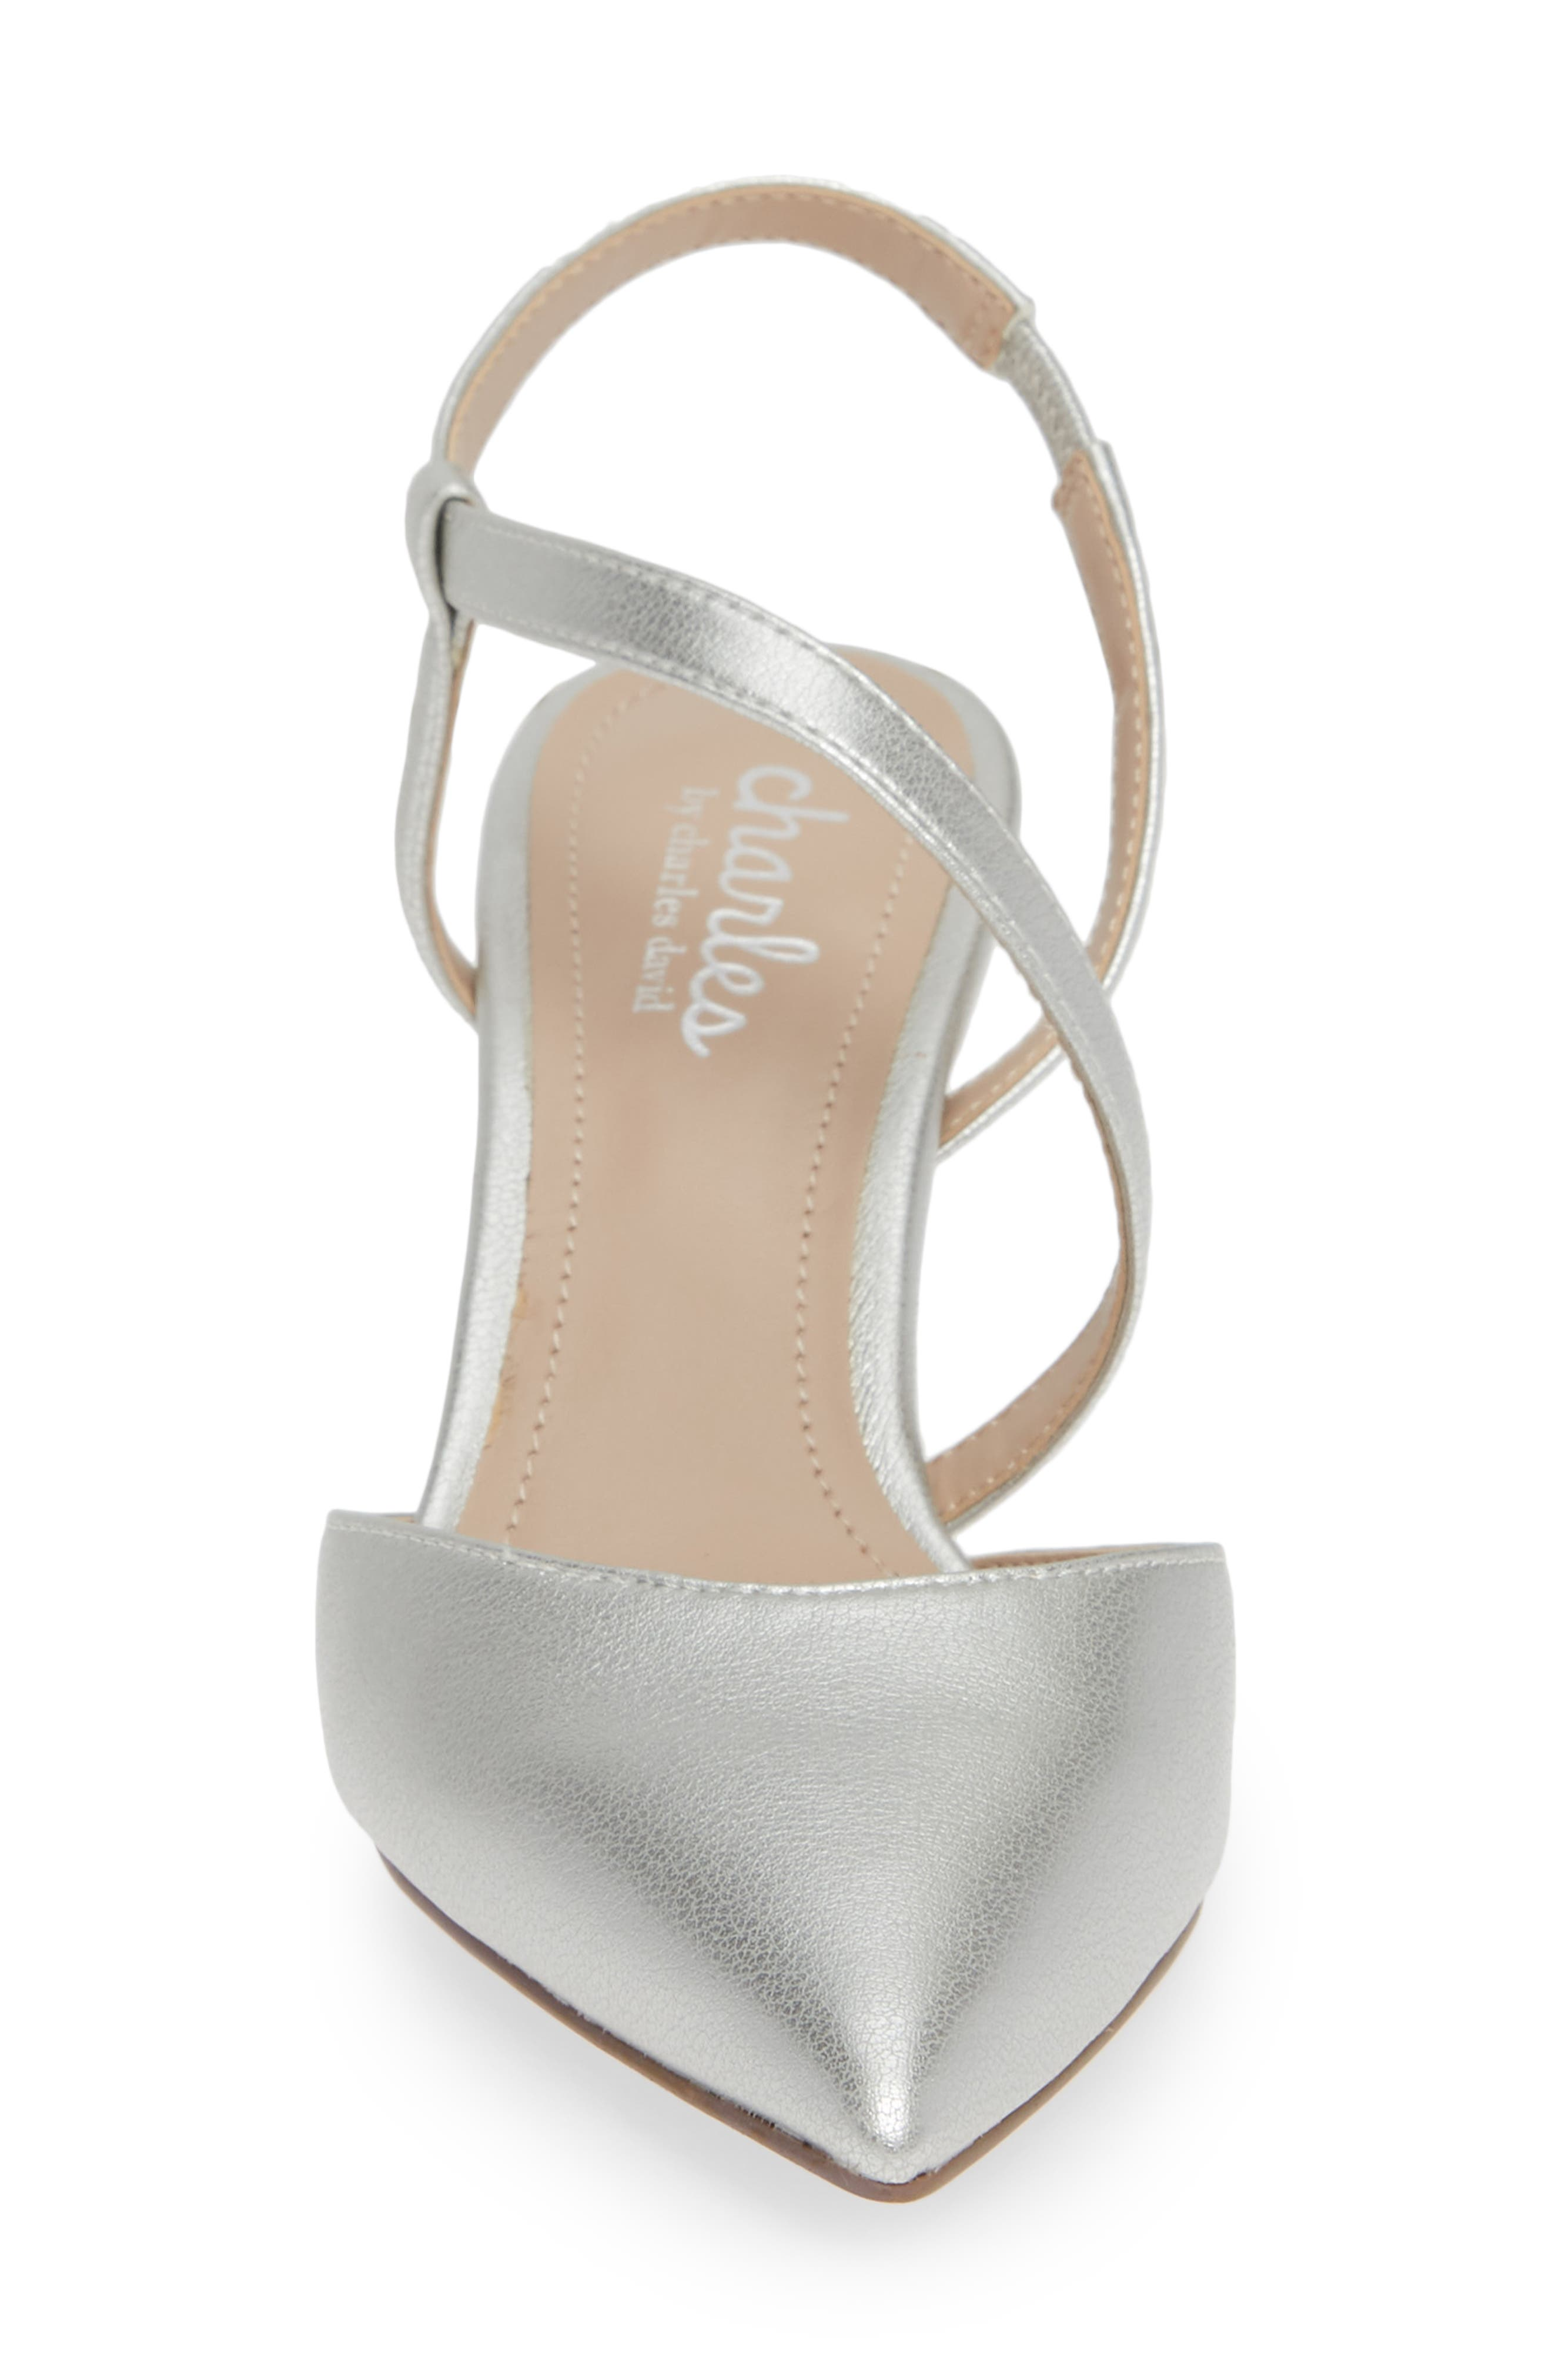 CHARLES BY CHARLES DAVID, Alda Pump, Alternate thumbnail 4, color, SILVER FAUX LEATHER